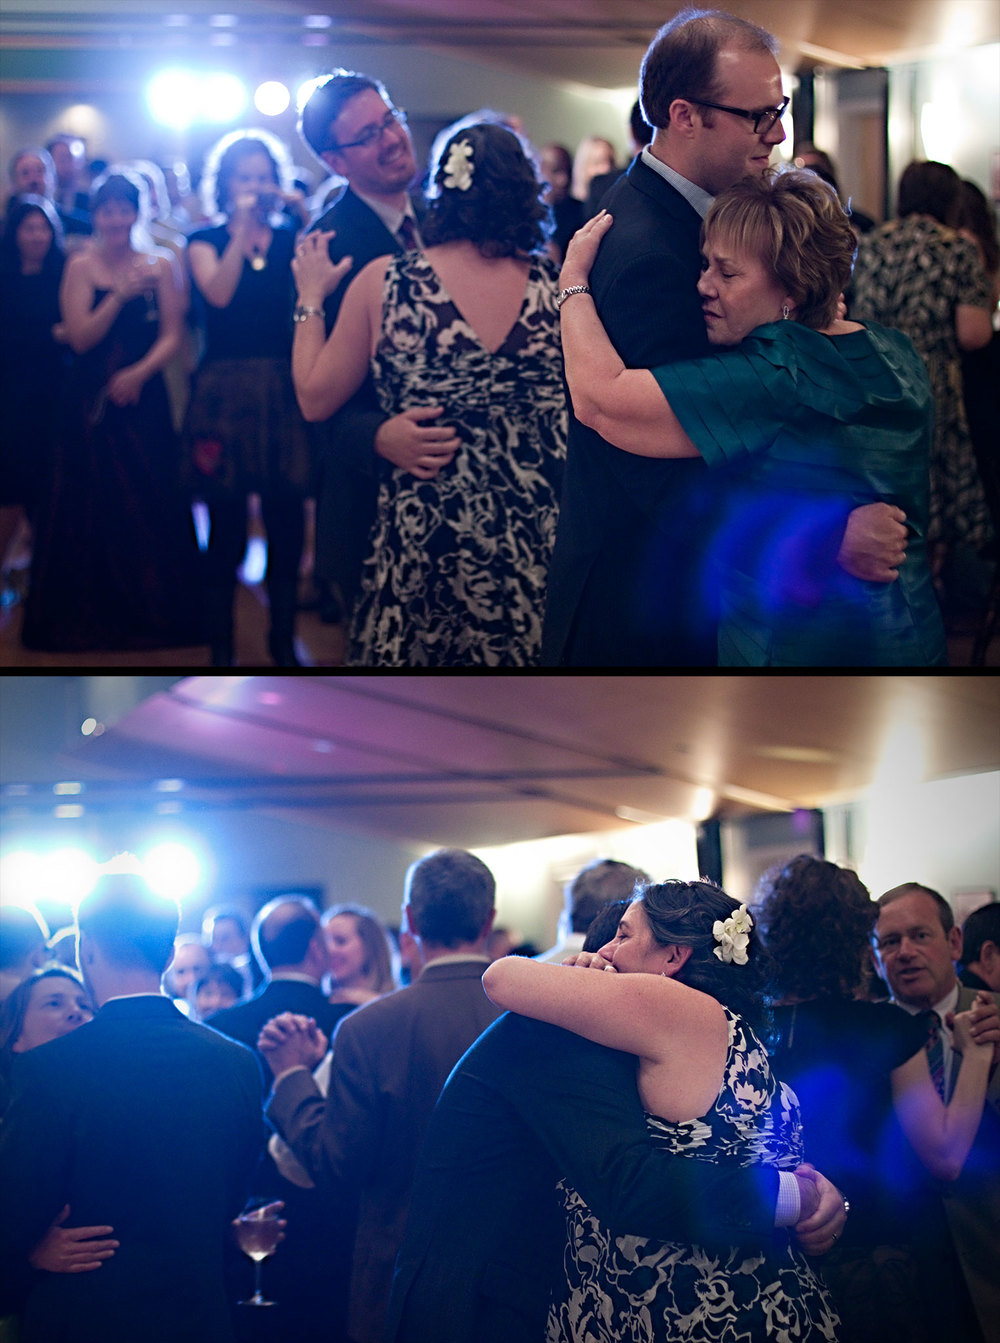 wedding-photographer-toronto-canada-shayne-gray_9959.jpg